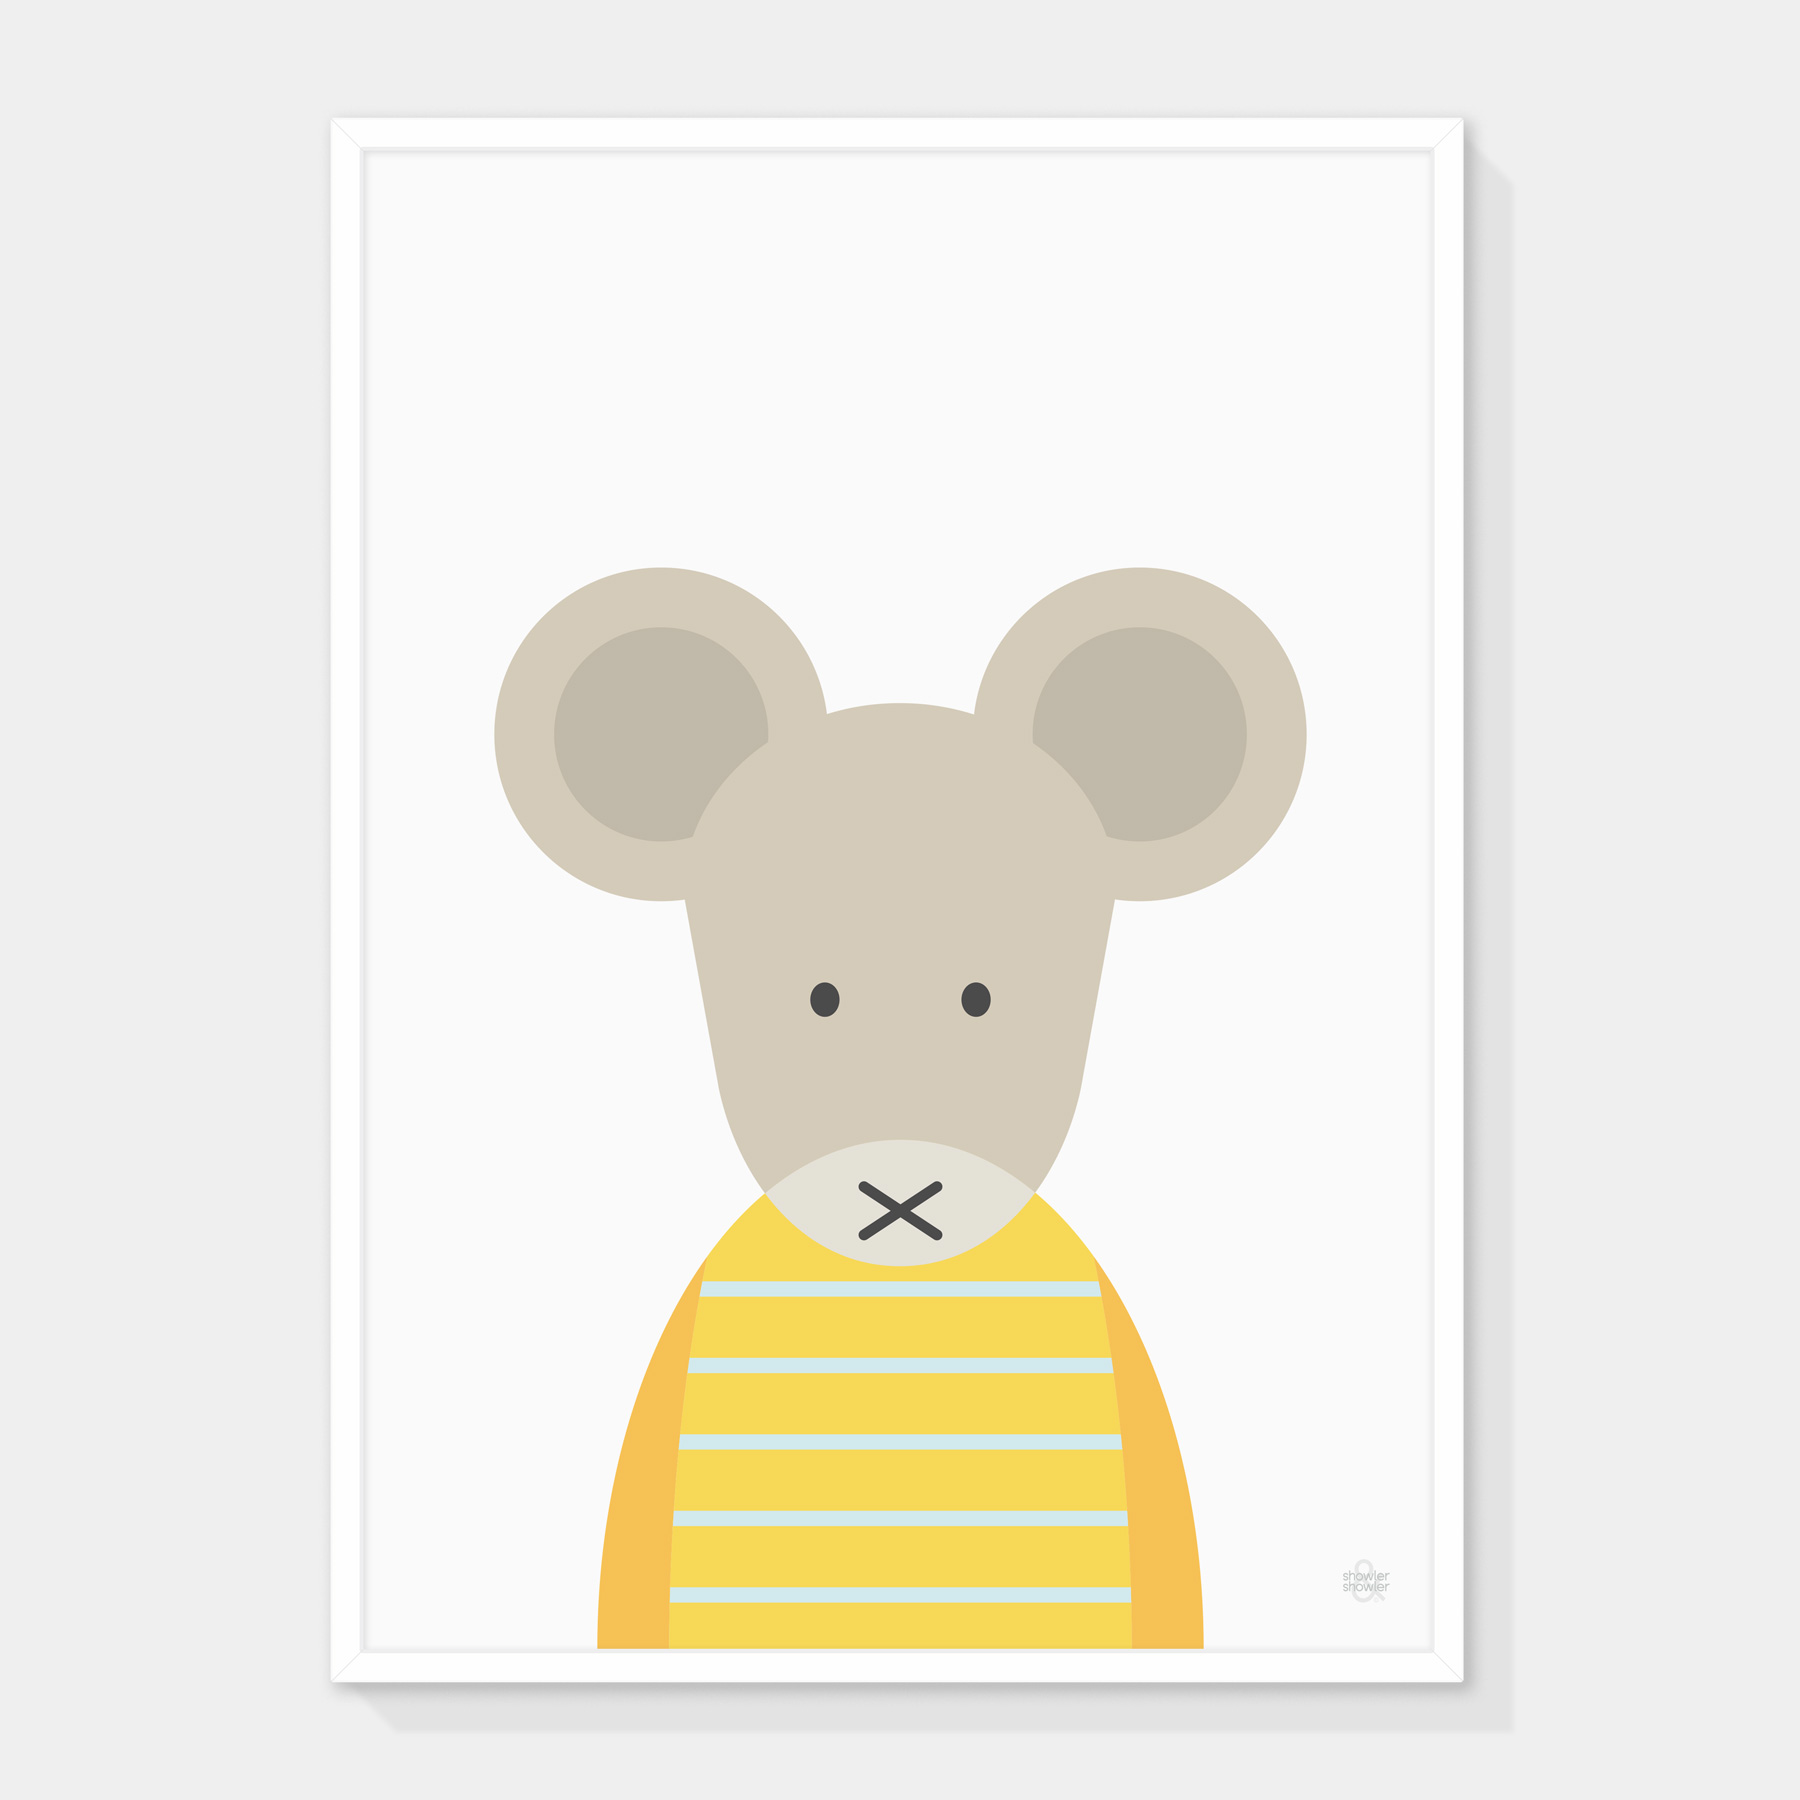 Yerllow-Striped-Mouse-Framed.jpg